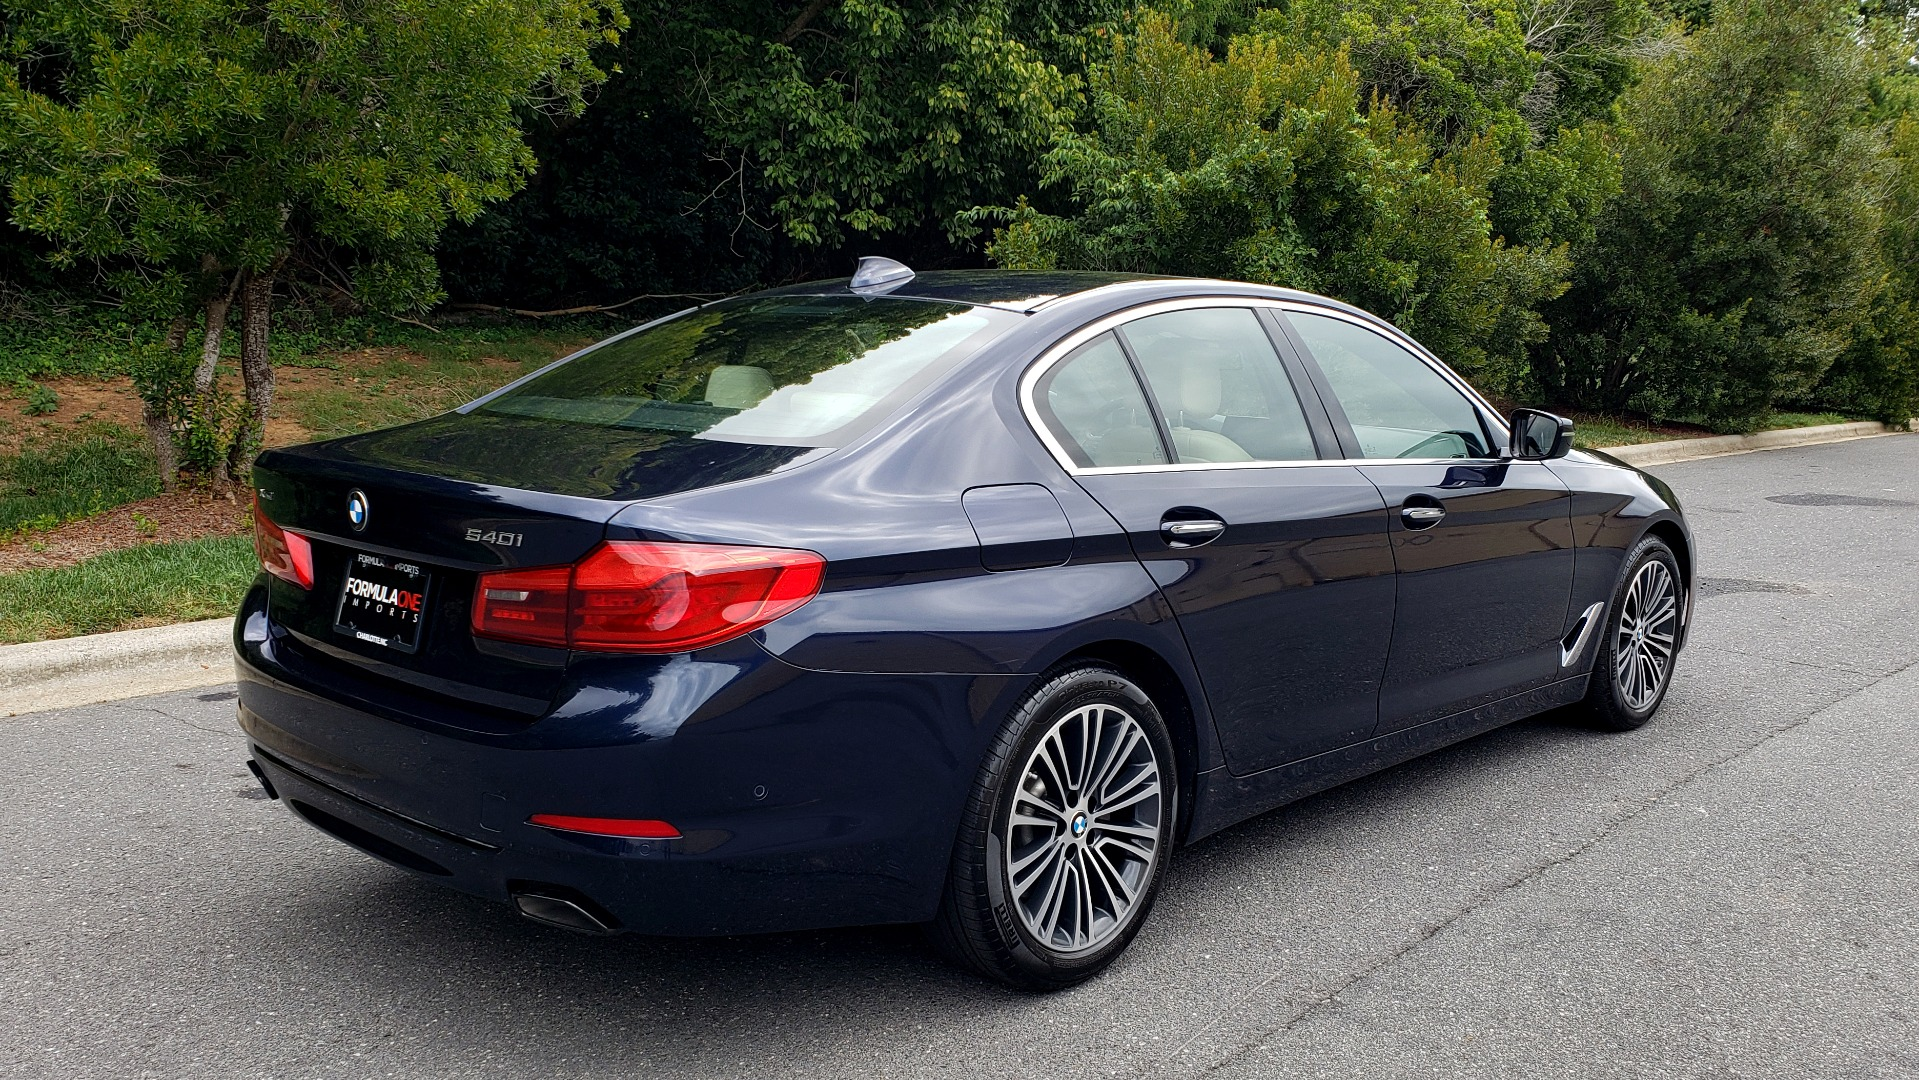 Used 2017 BMW 5 SERIES 540I XDRIVE PREMIUM / NAV / HUD / SUNROOF / REARVIEW for sale $36,595 at Formula Imports in Charlotte NC 28227 6